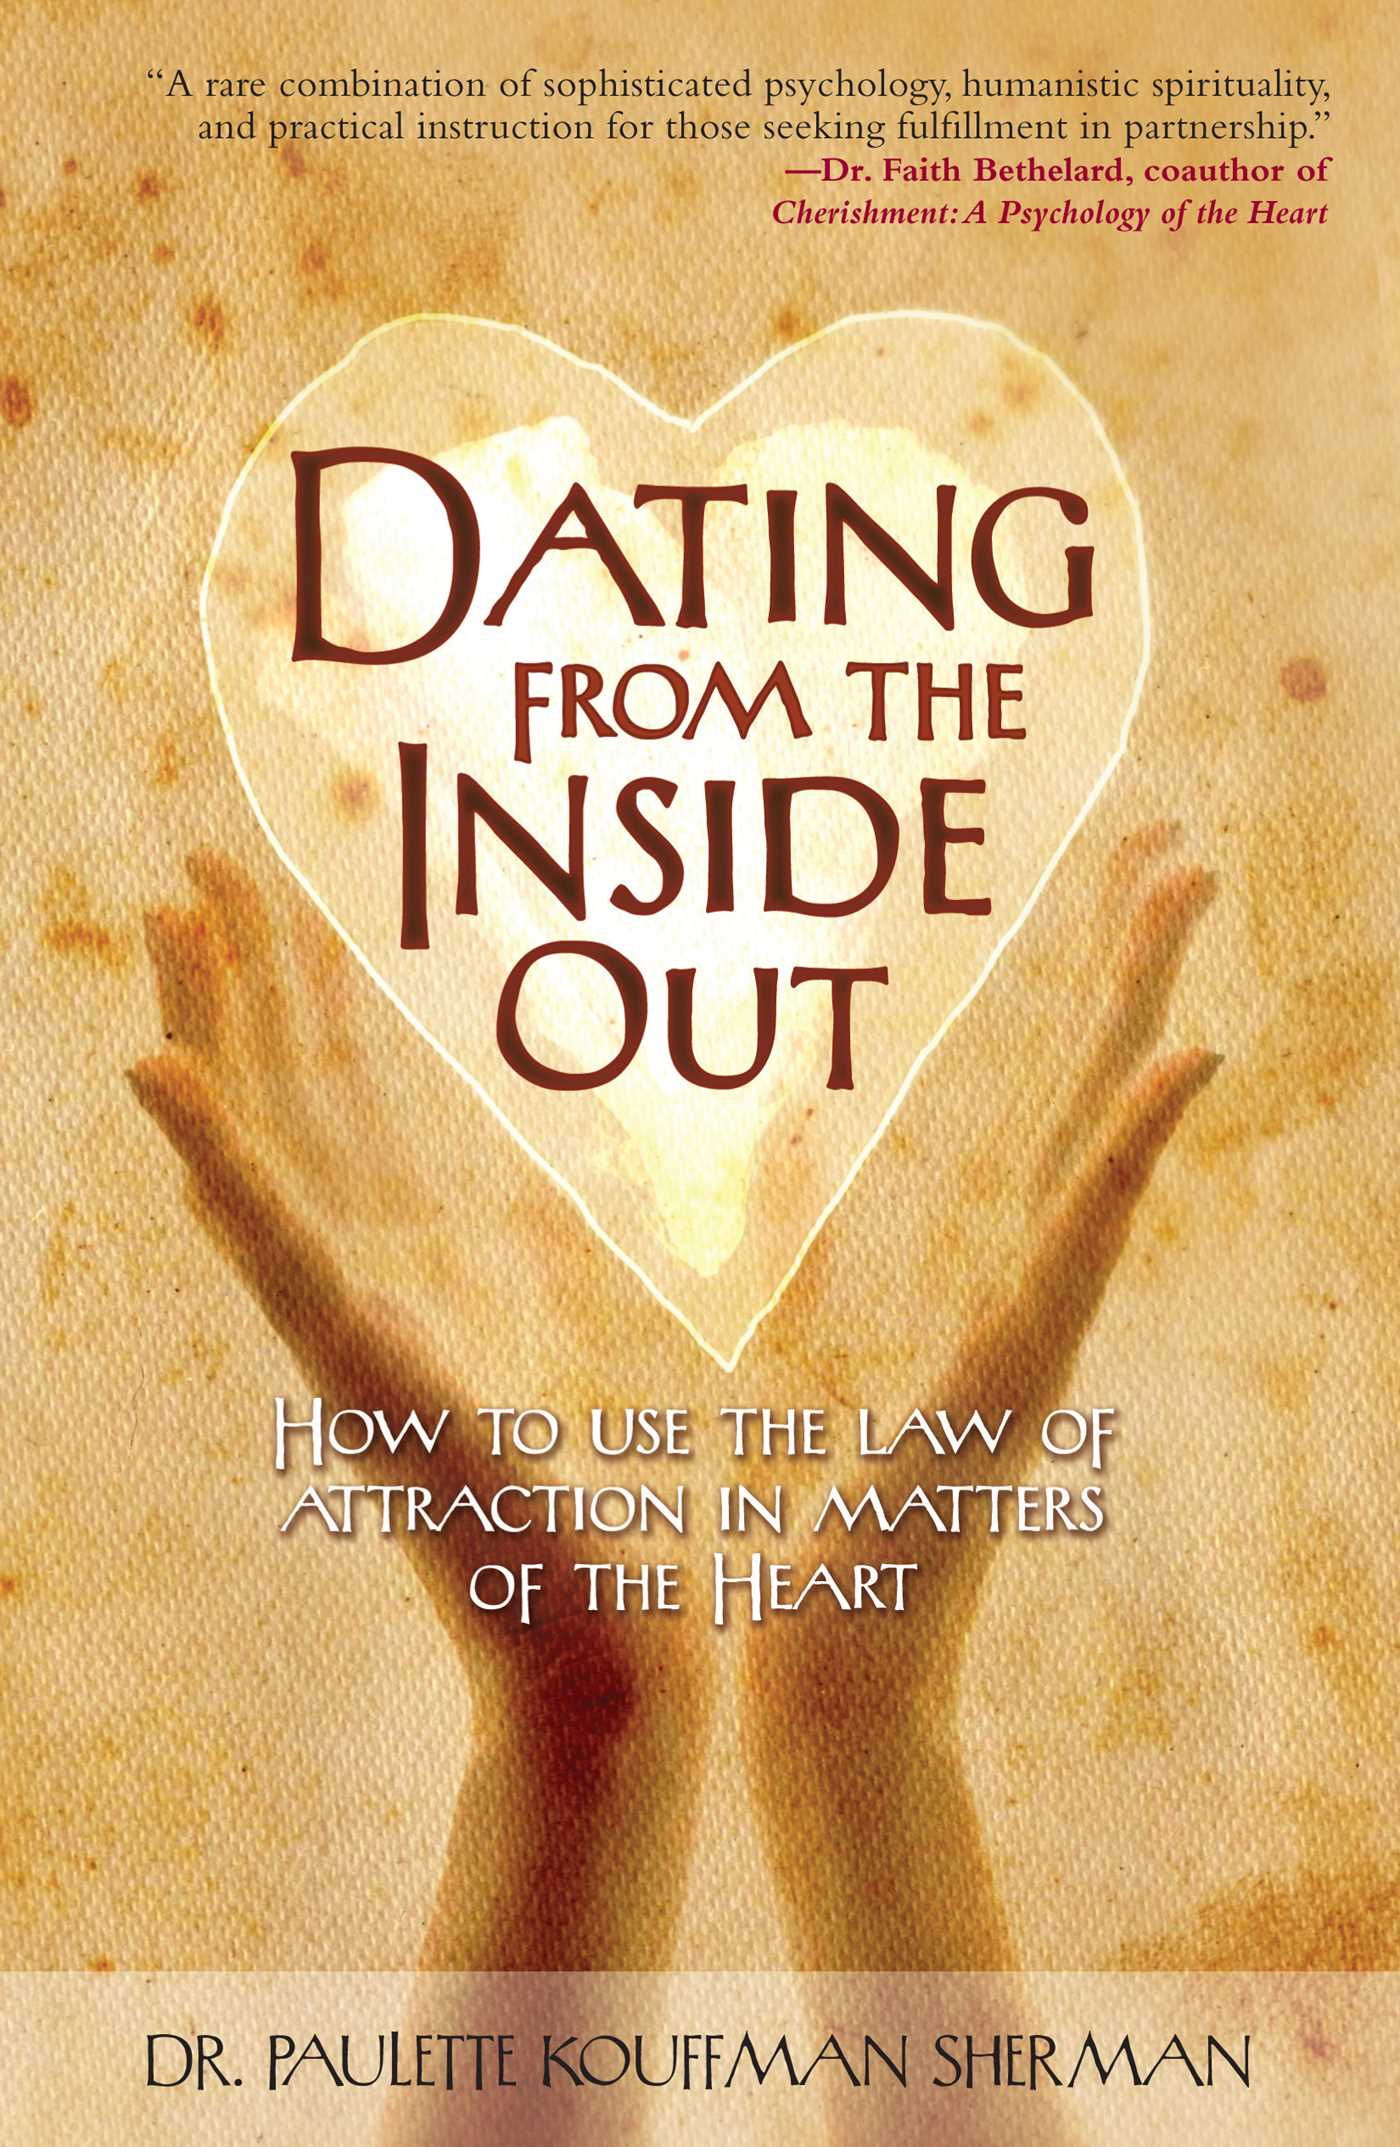 Psychology of dating book